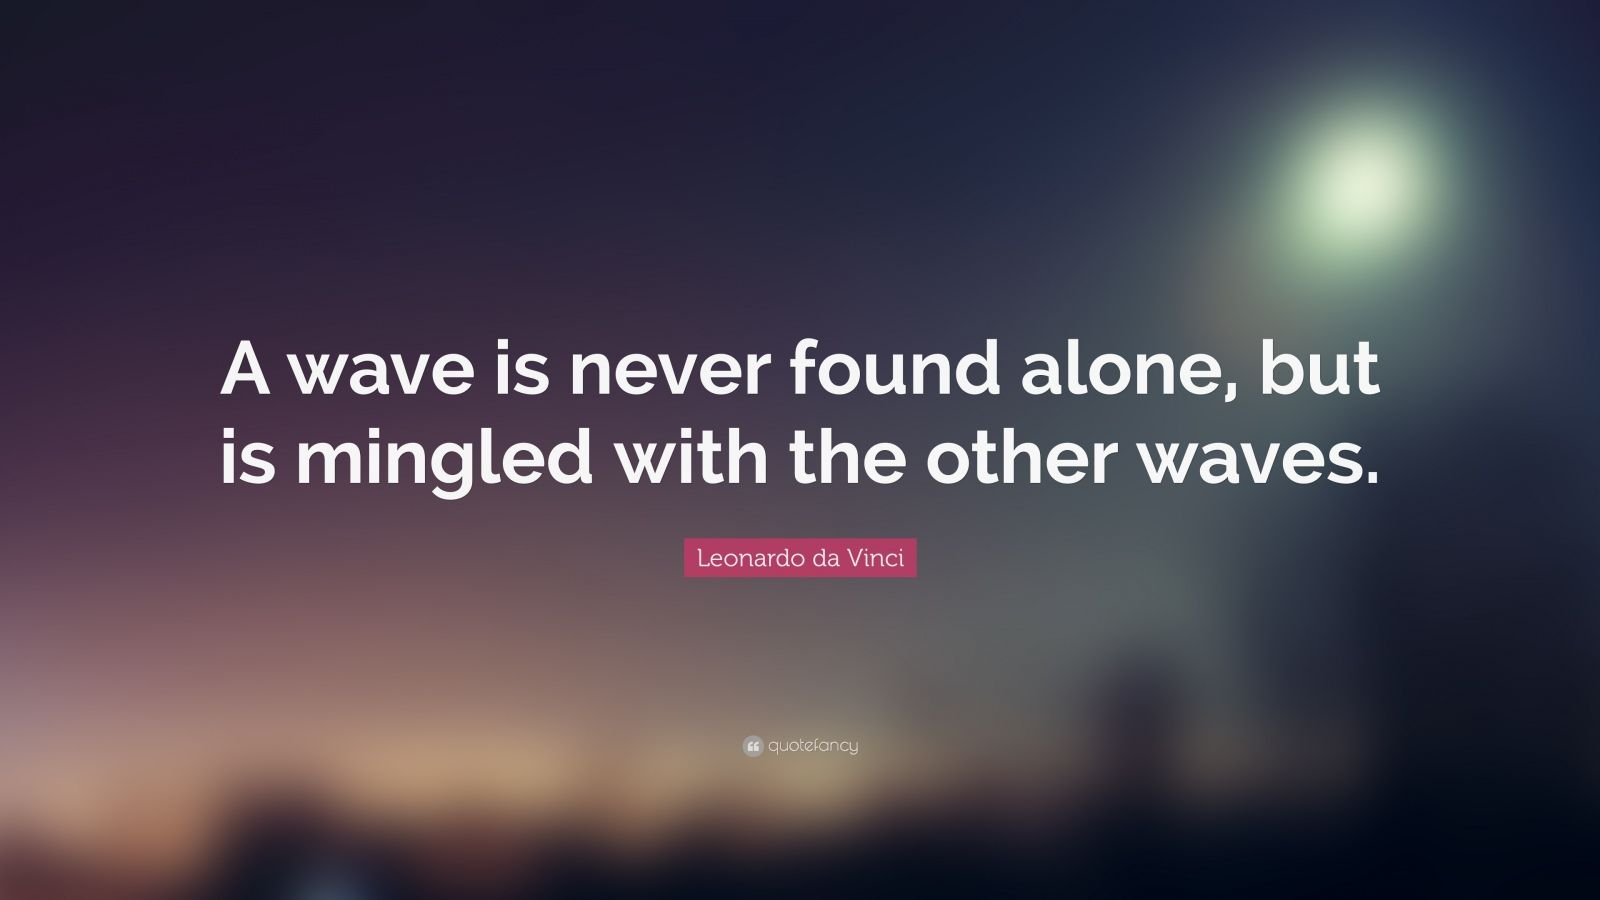 """Leonardo da Vinci Quote: """"A wave is never found alone, but is mingled with the other waves."""""""